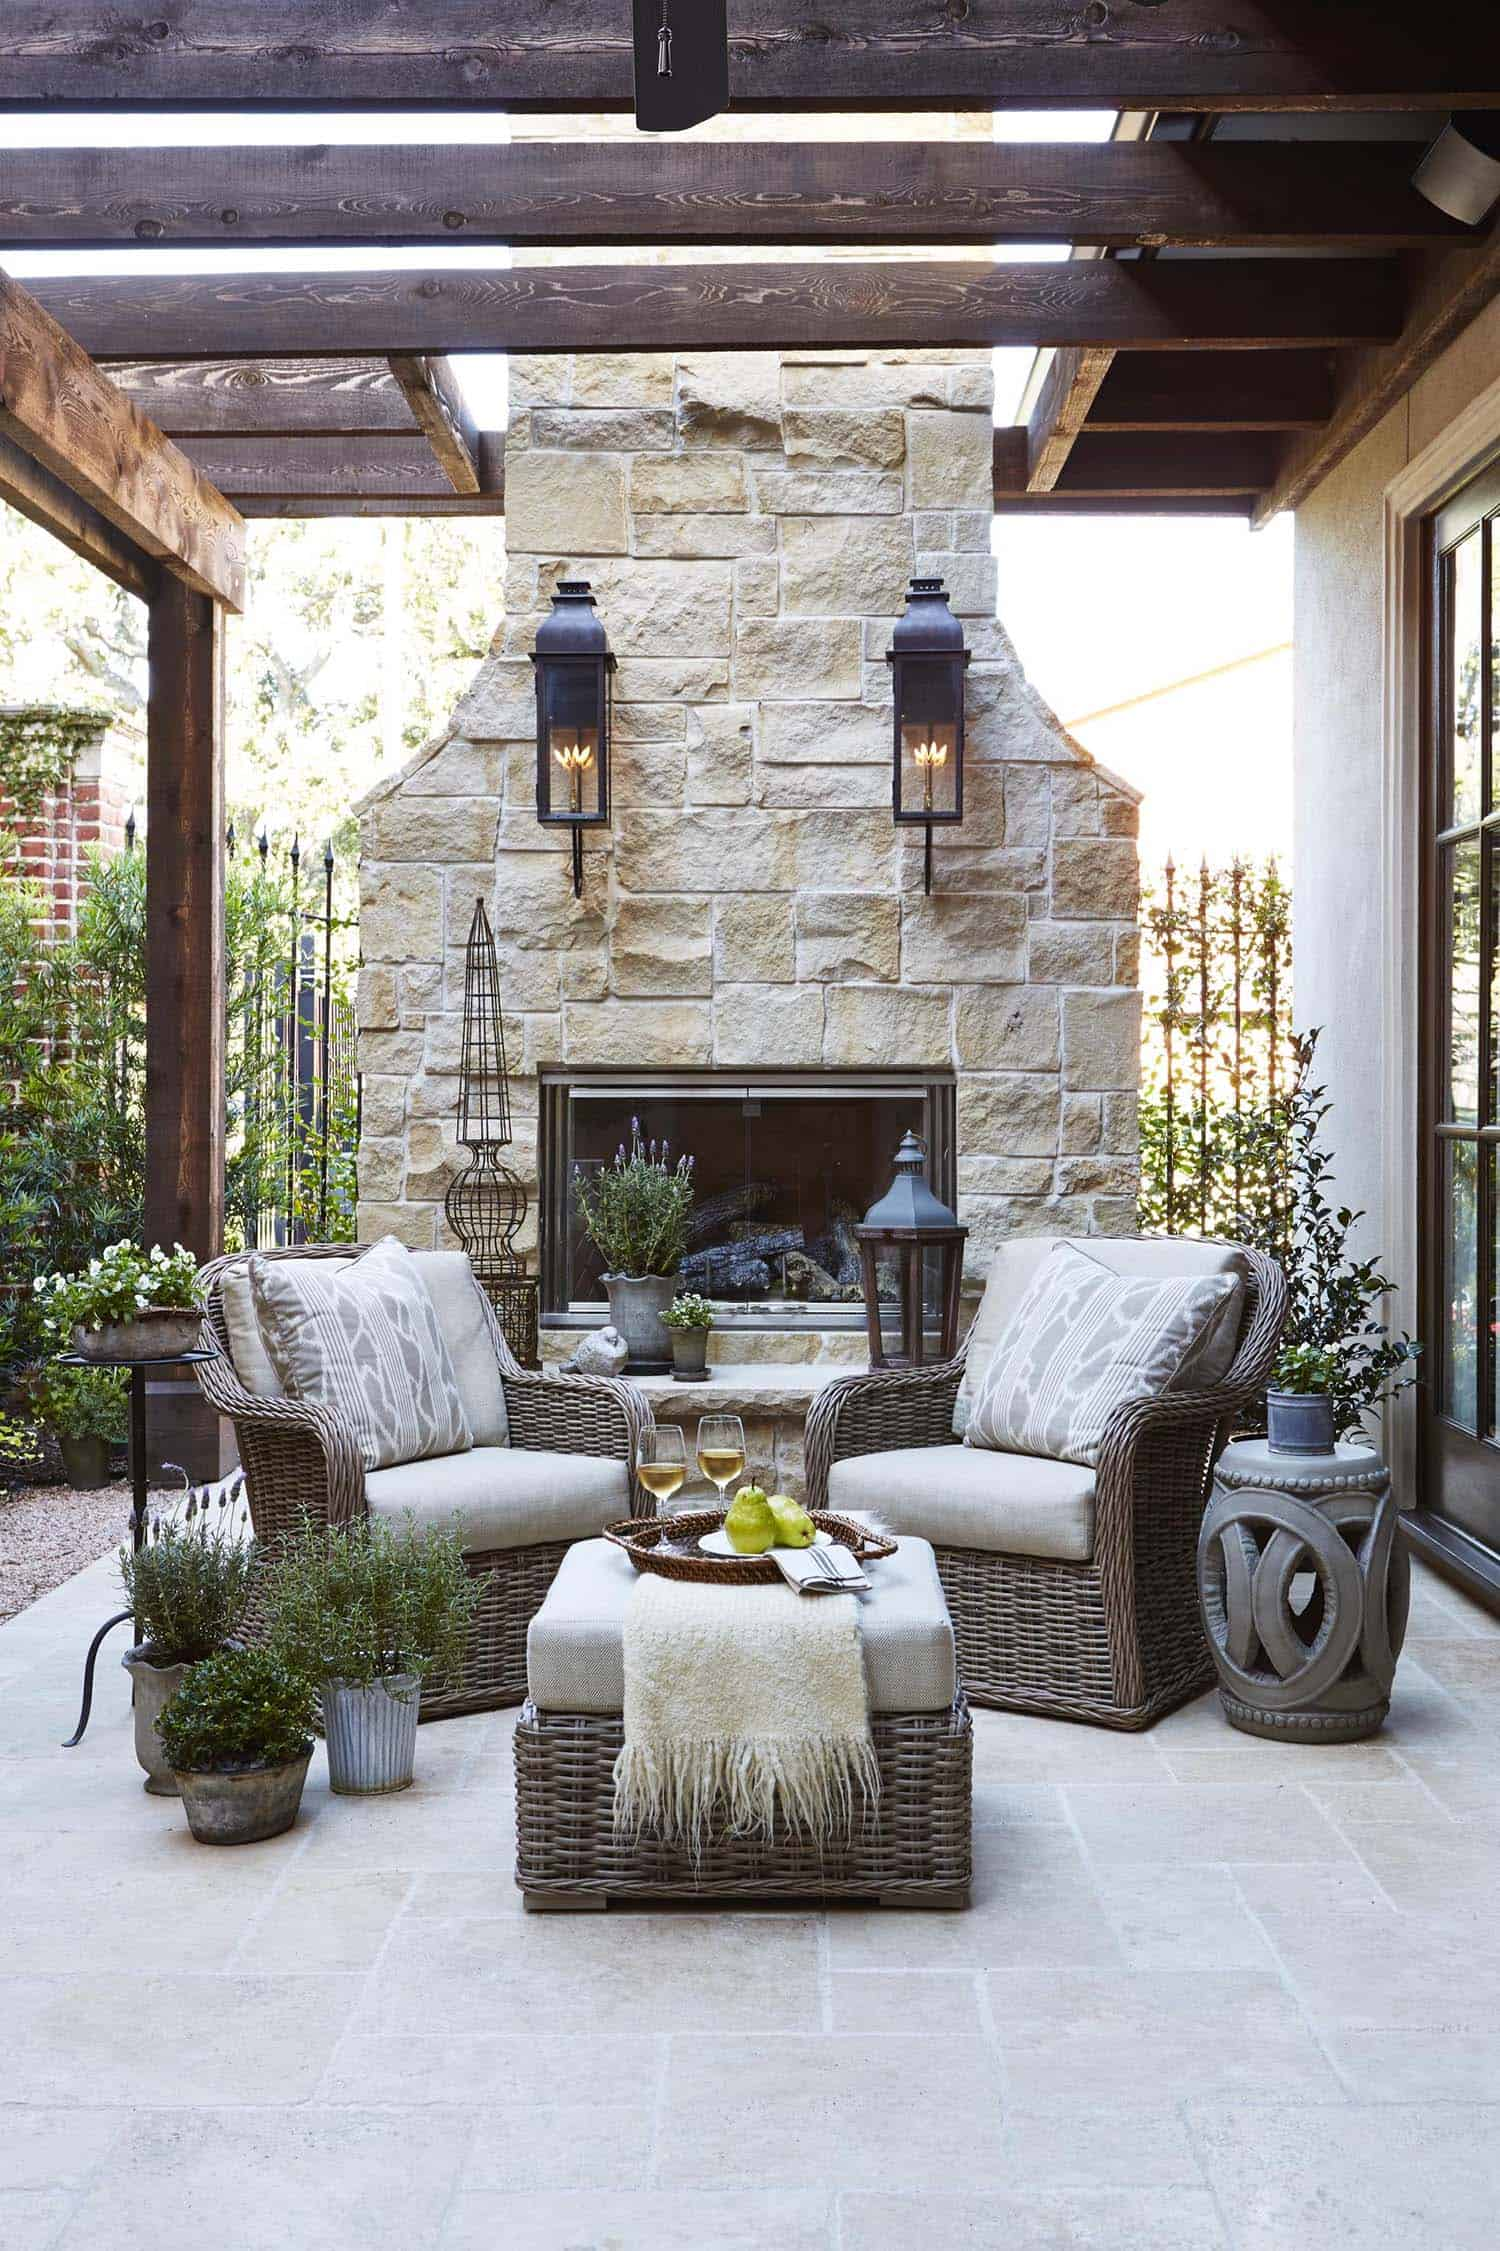 30+ Irresistible outdoor fireplace ideas that will leave ... on Outdoor Kitchen And Fireplace Ideas id=39001